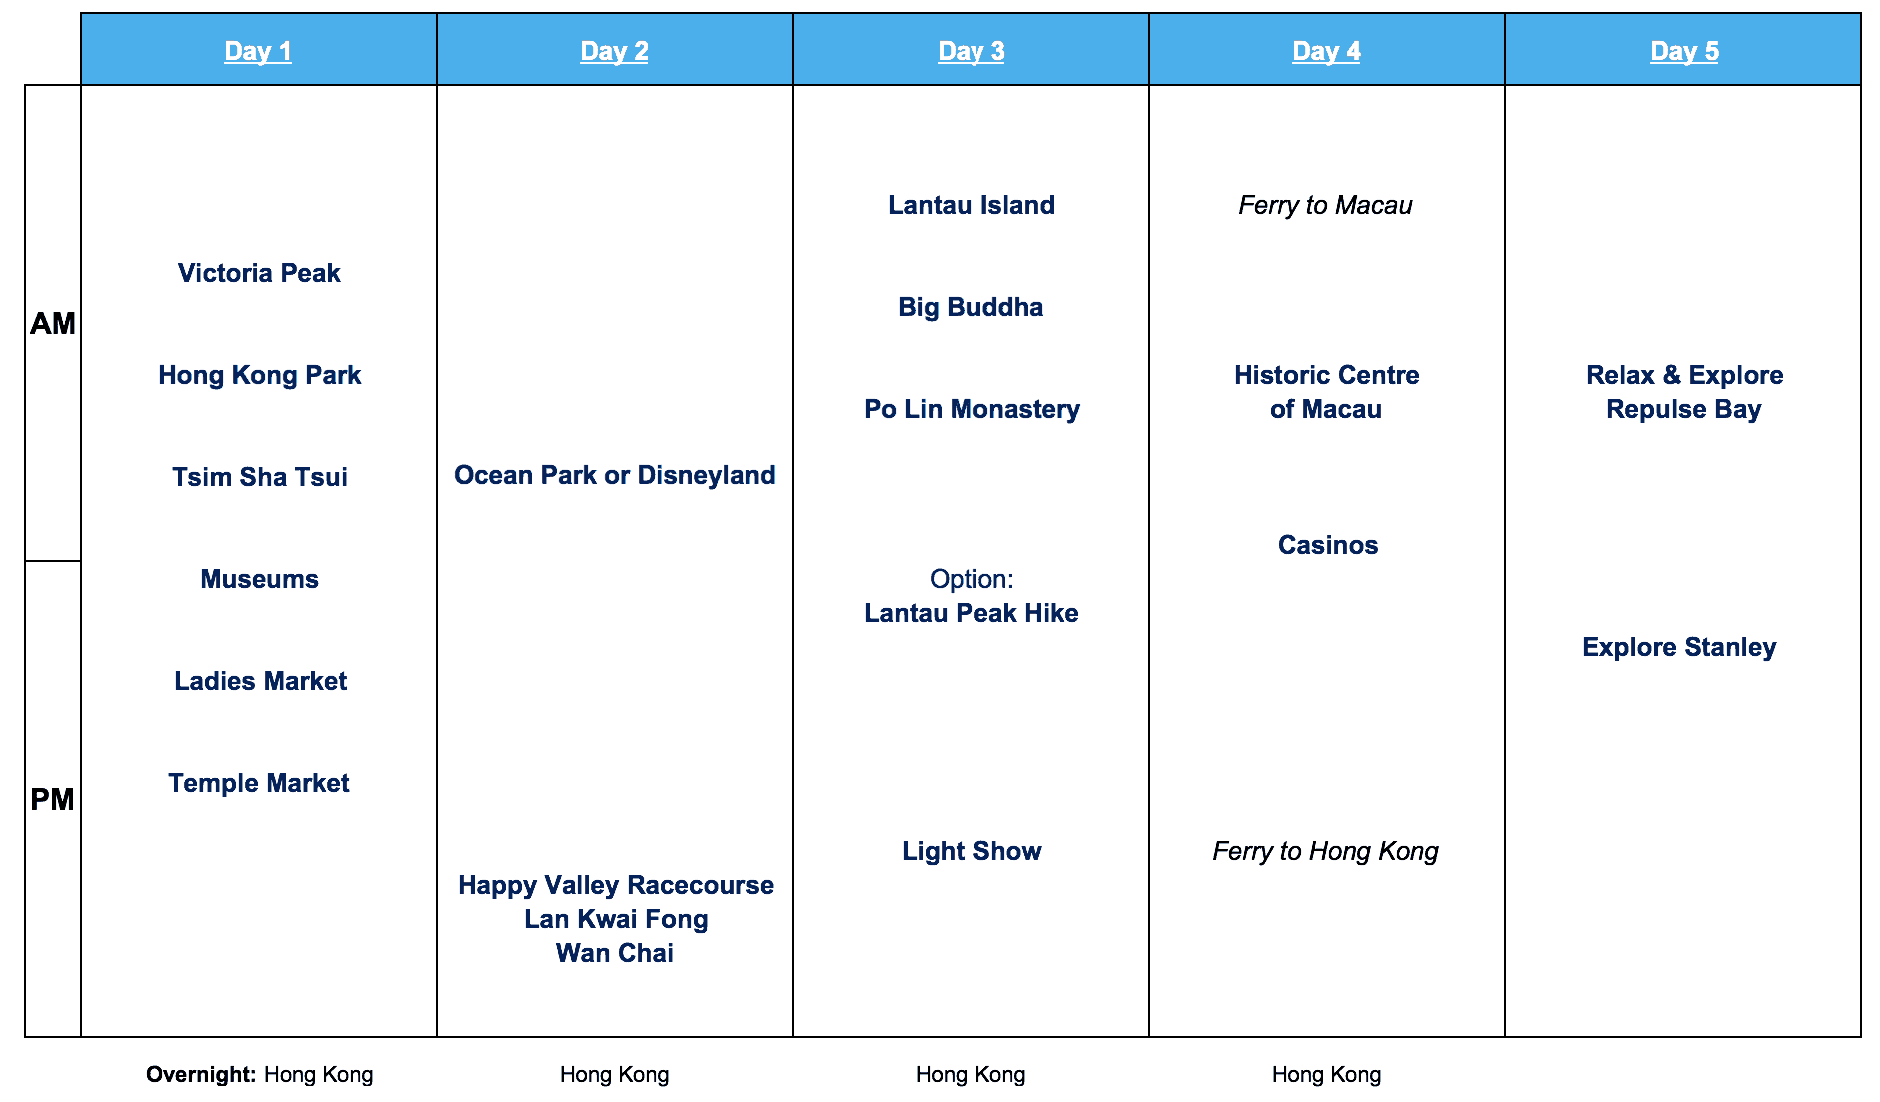 Hong Kong 5 Day Itinerary